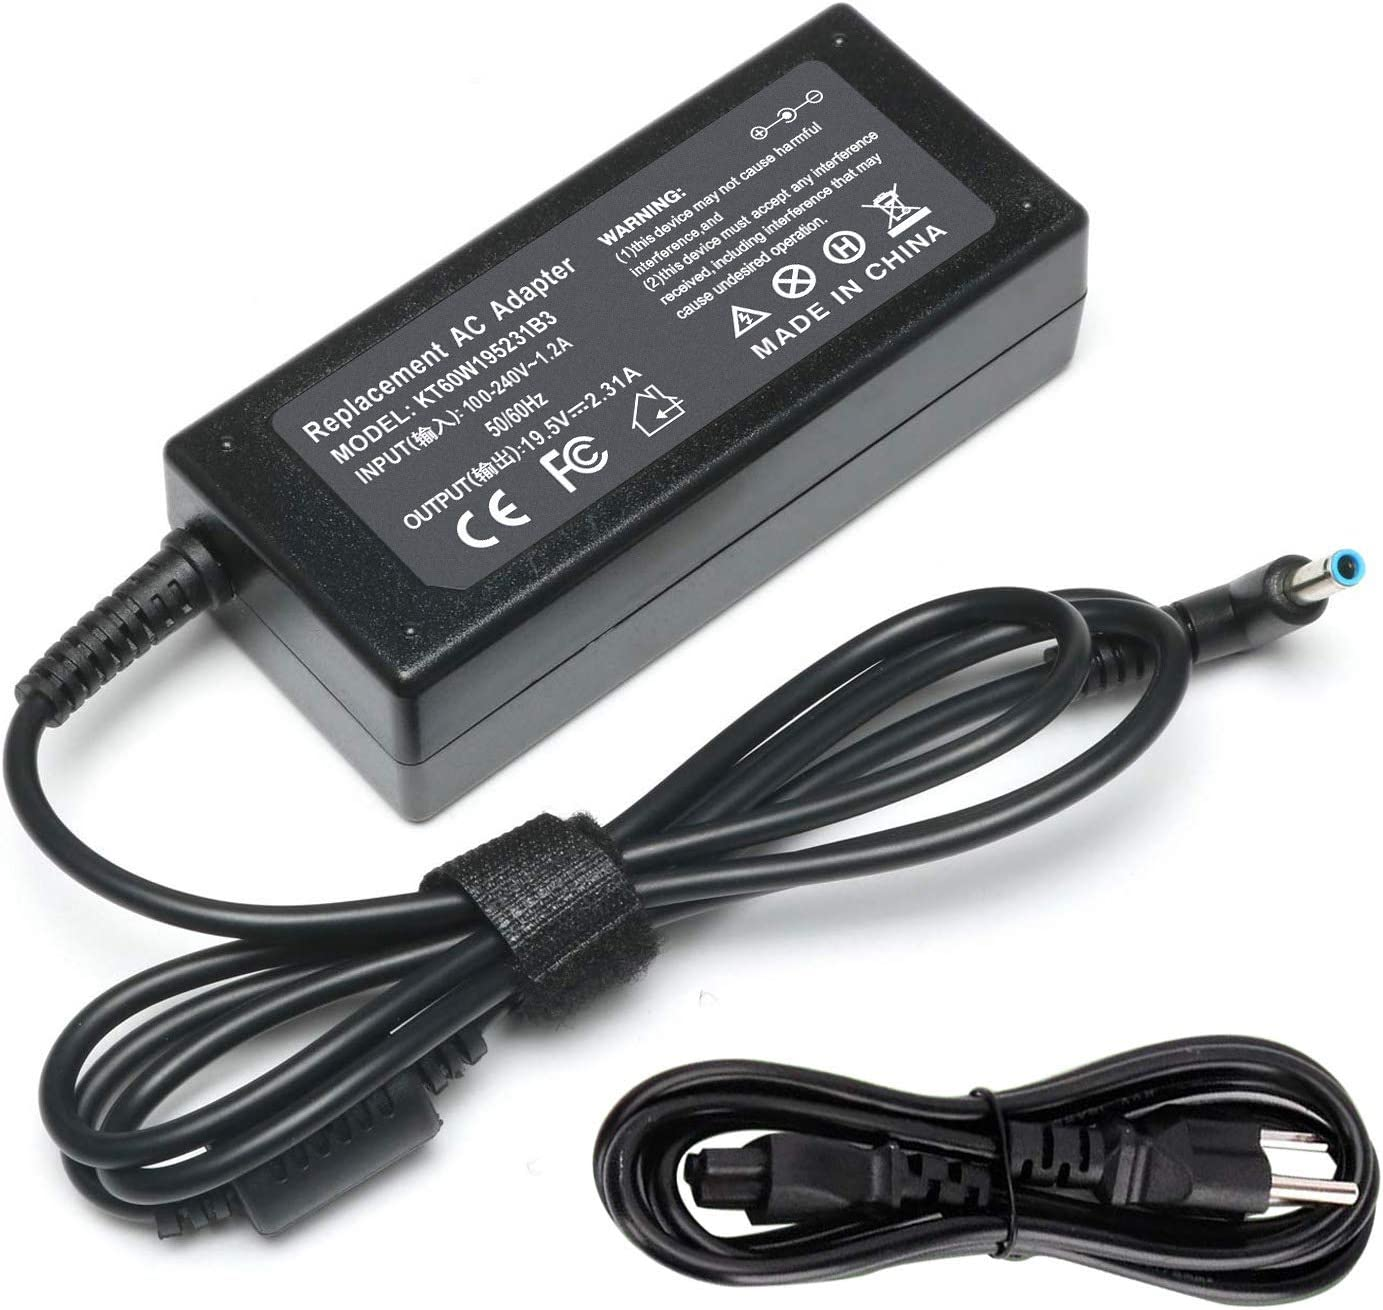 BE•Sell 45W 19.5V 2.31A AC Adapter Charger for HP Stream 11 13 14 Pavilion x360 m3-u001dx m3-u103dx Charger 15-f272wm 15-f387wm Notebook Convertible PC Power Supply Cord